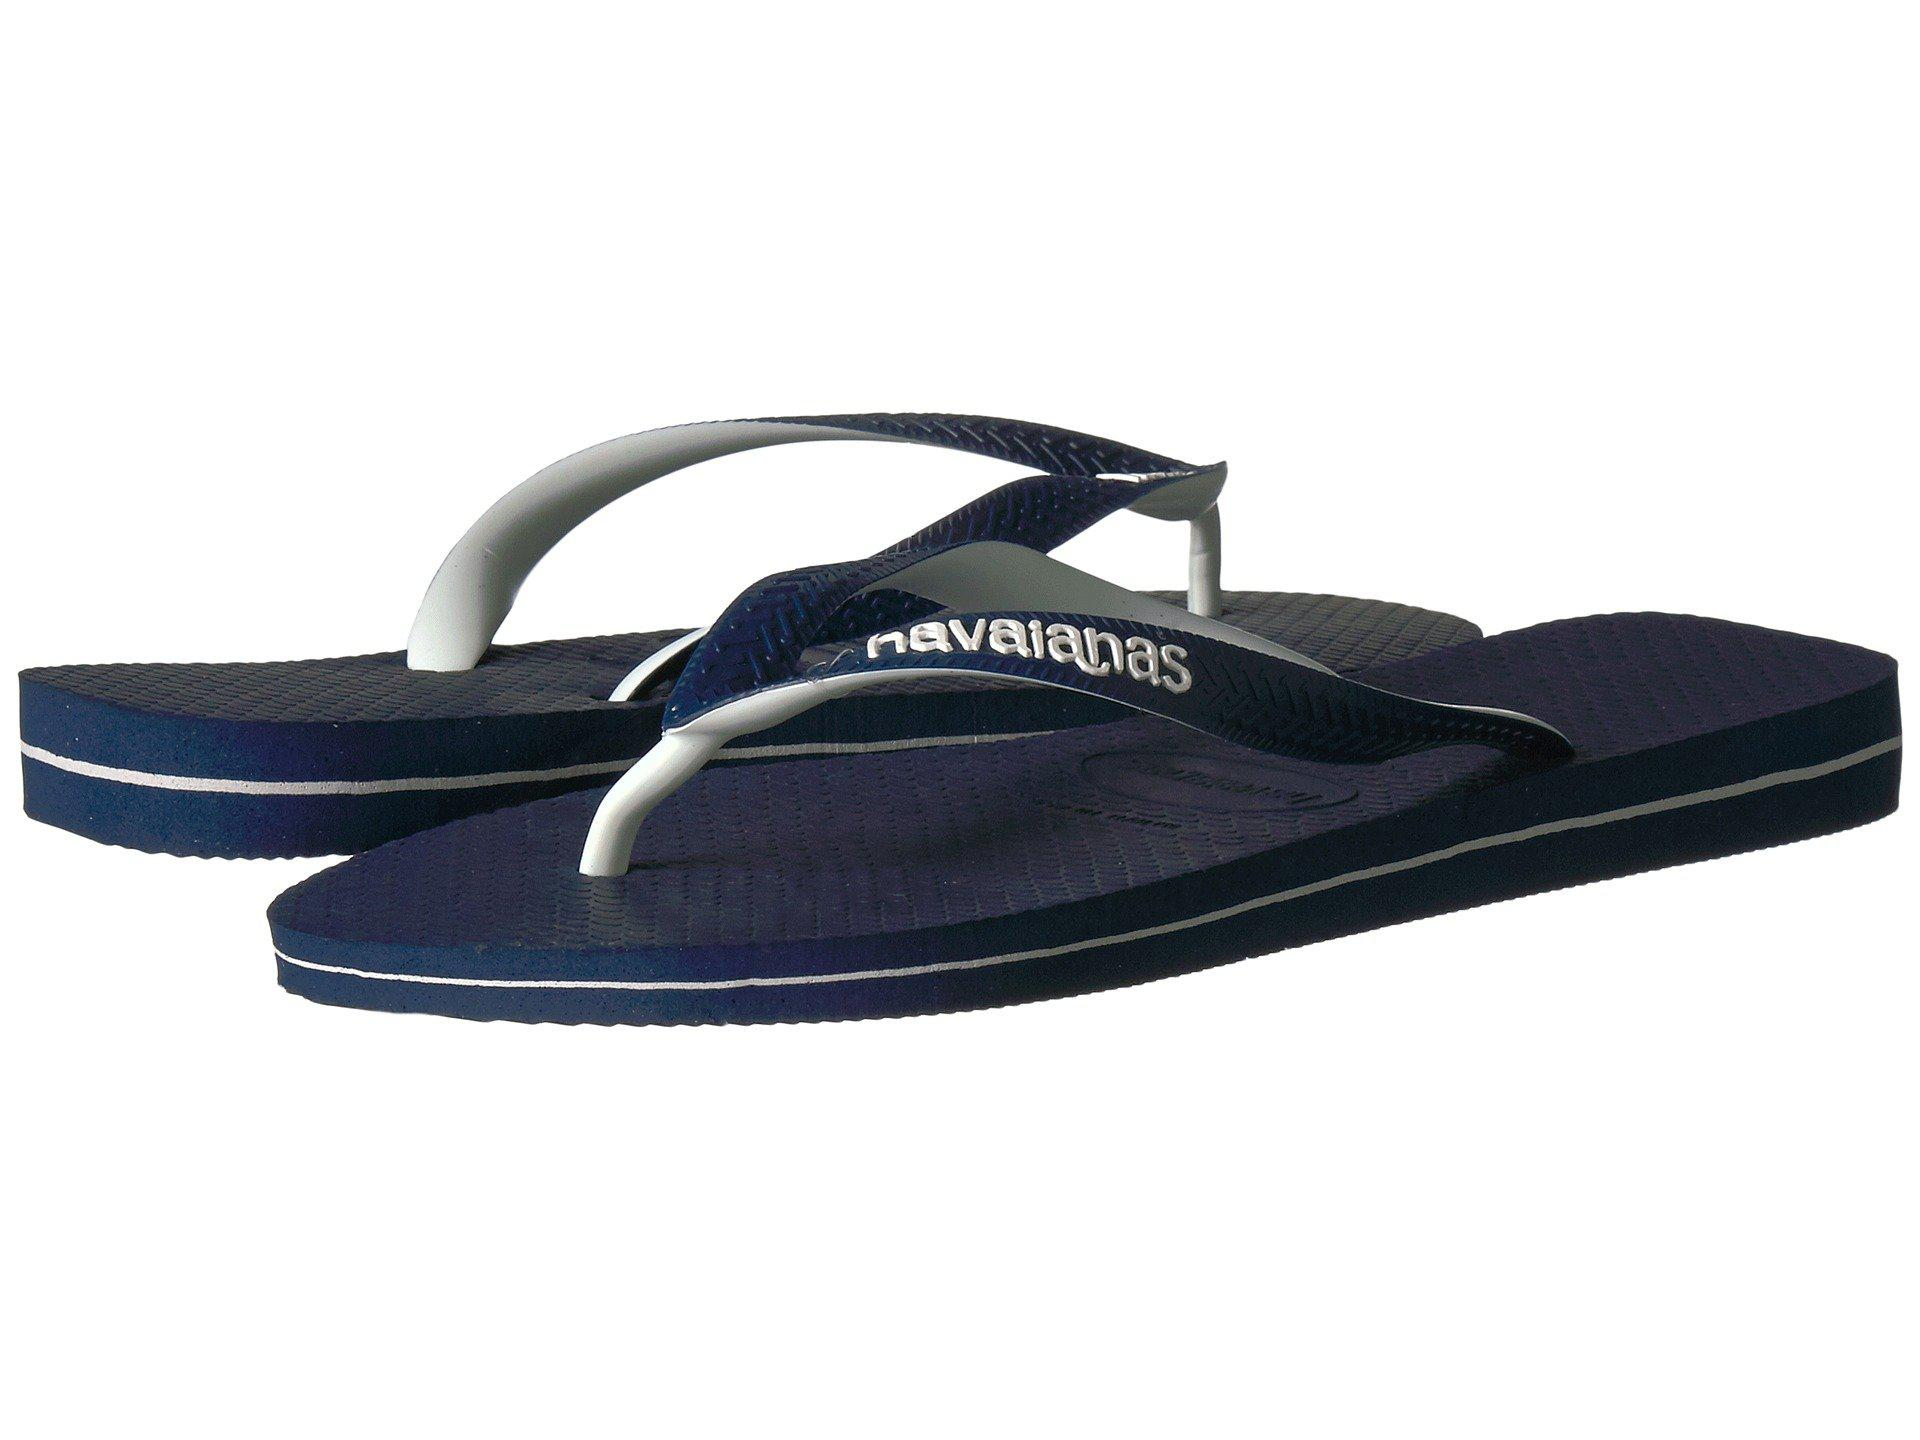 fd8afaa96032 Lyst - Havaianas Top Logo Filete Mix Sandal in Blue